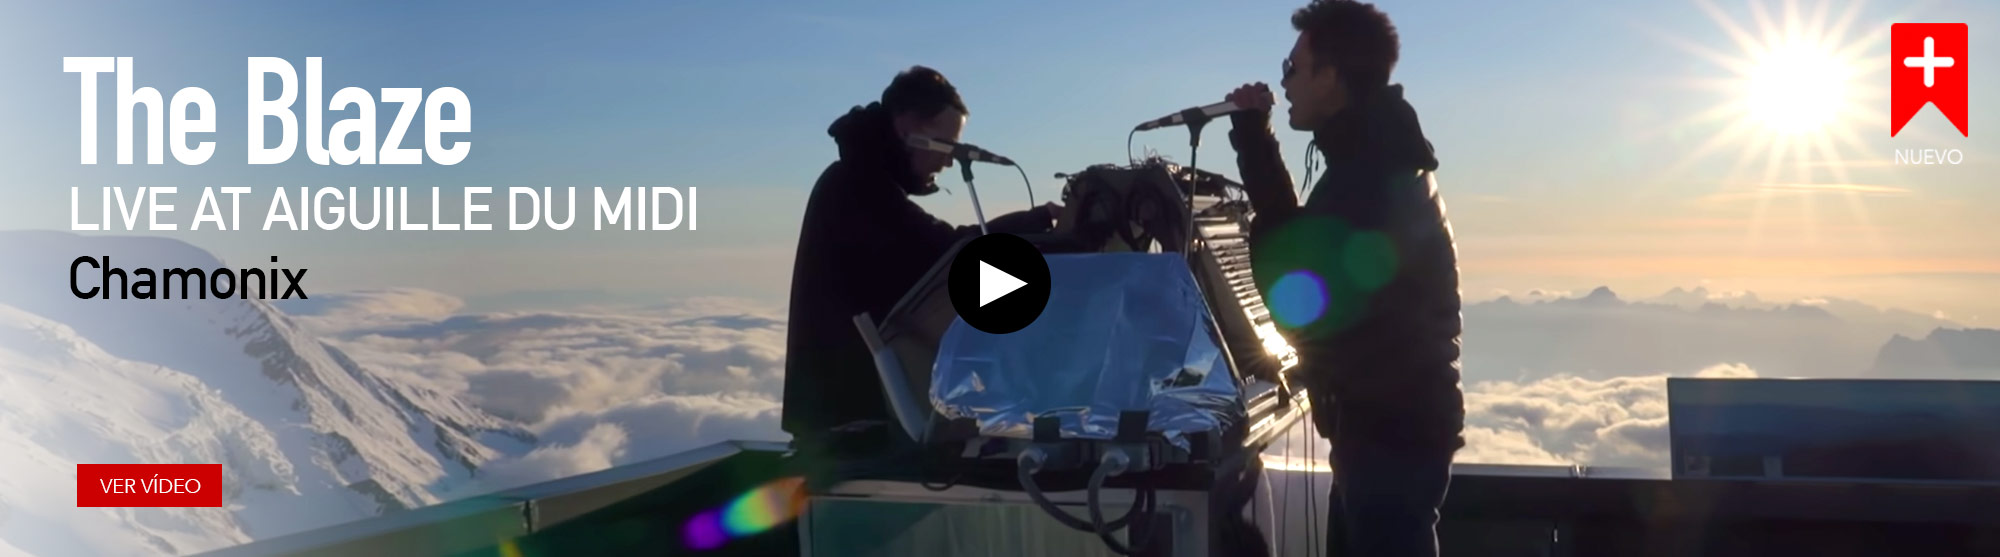 The Blaze. Live at Aiguille du Midi